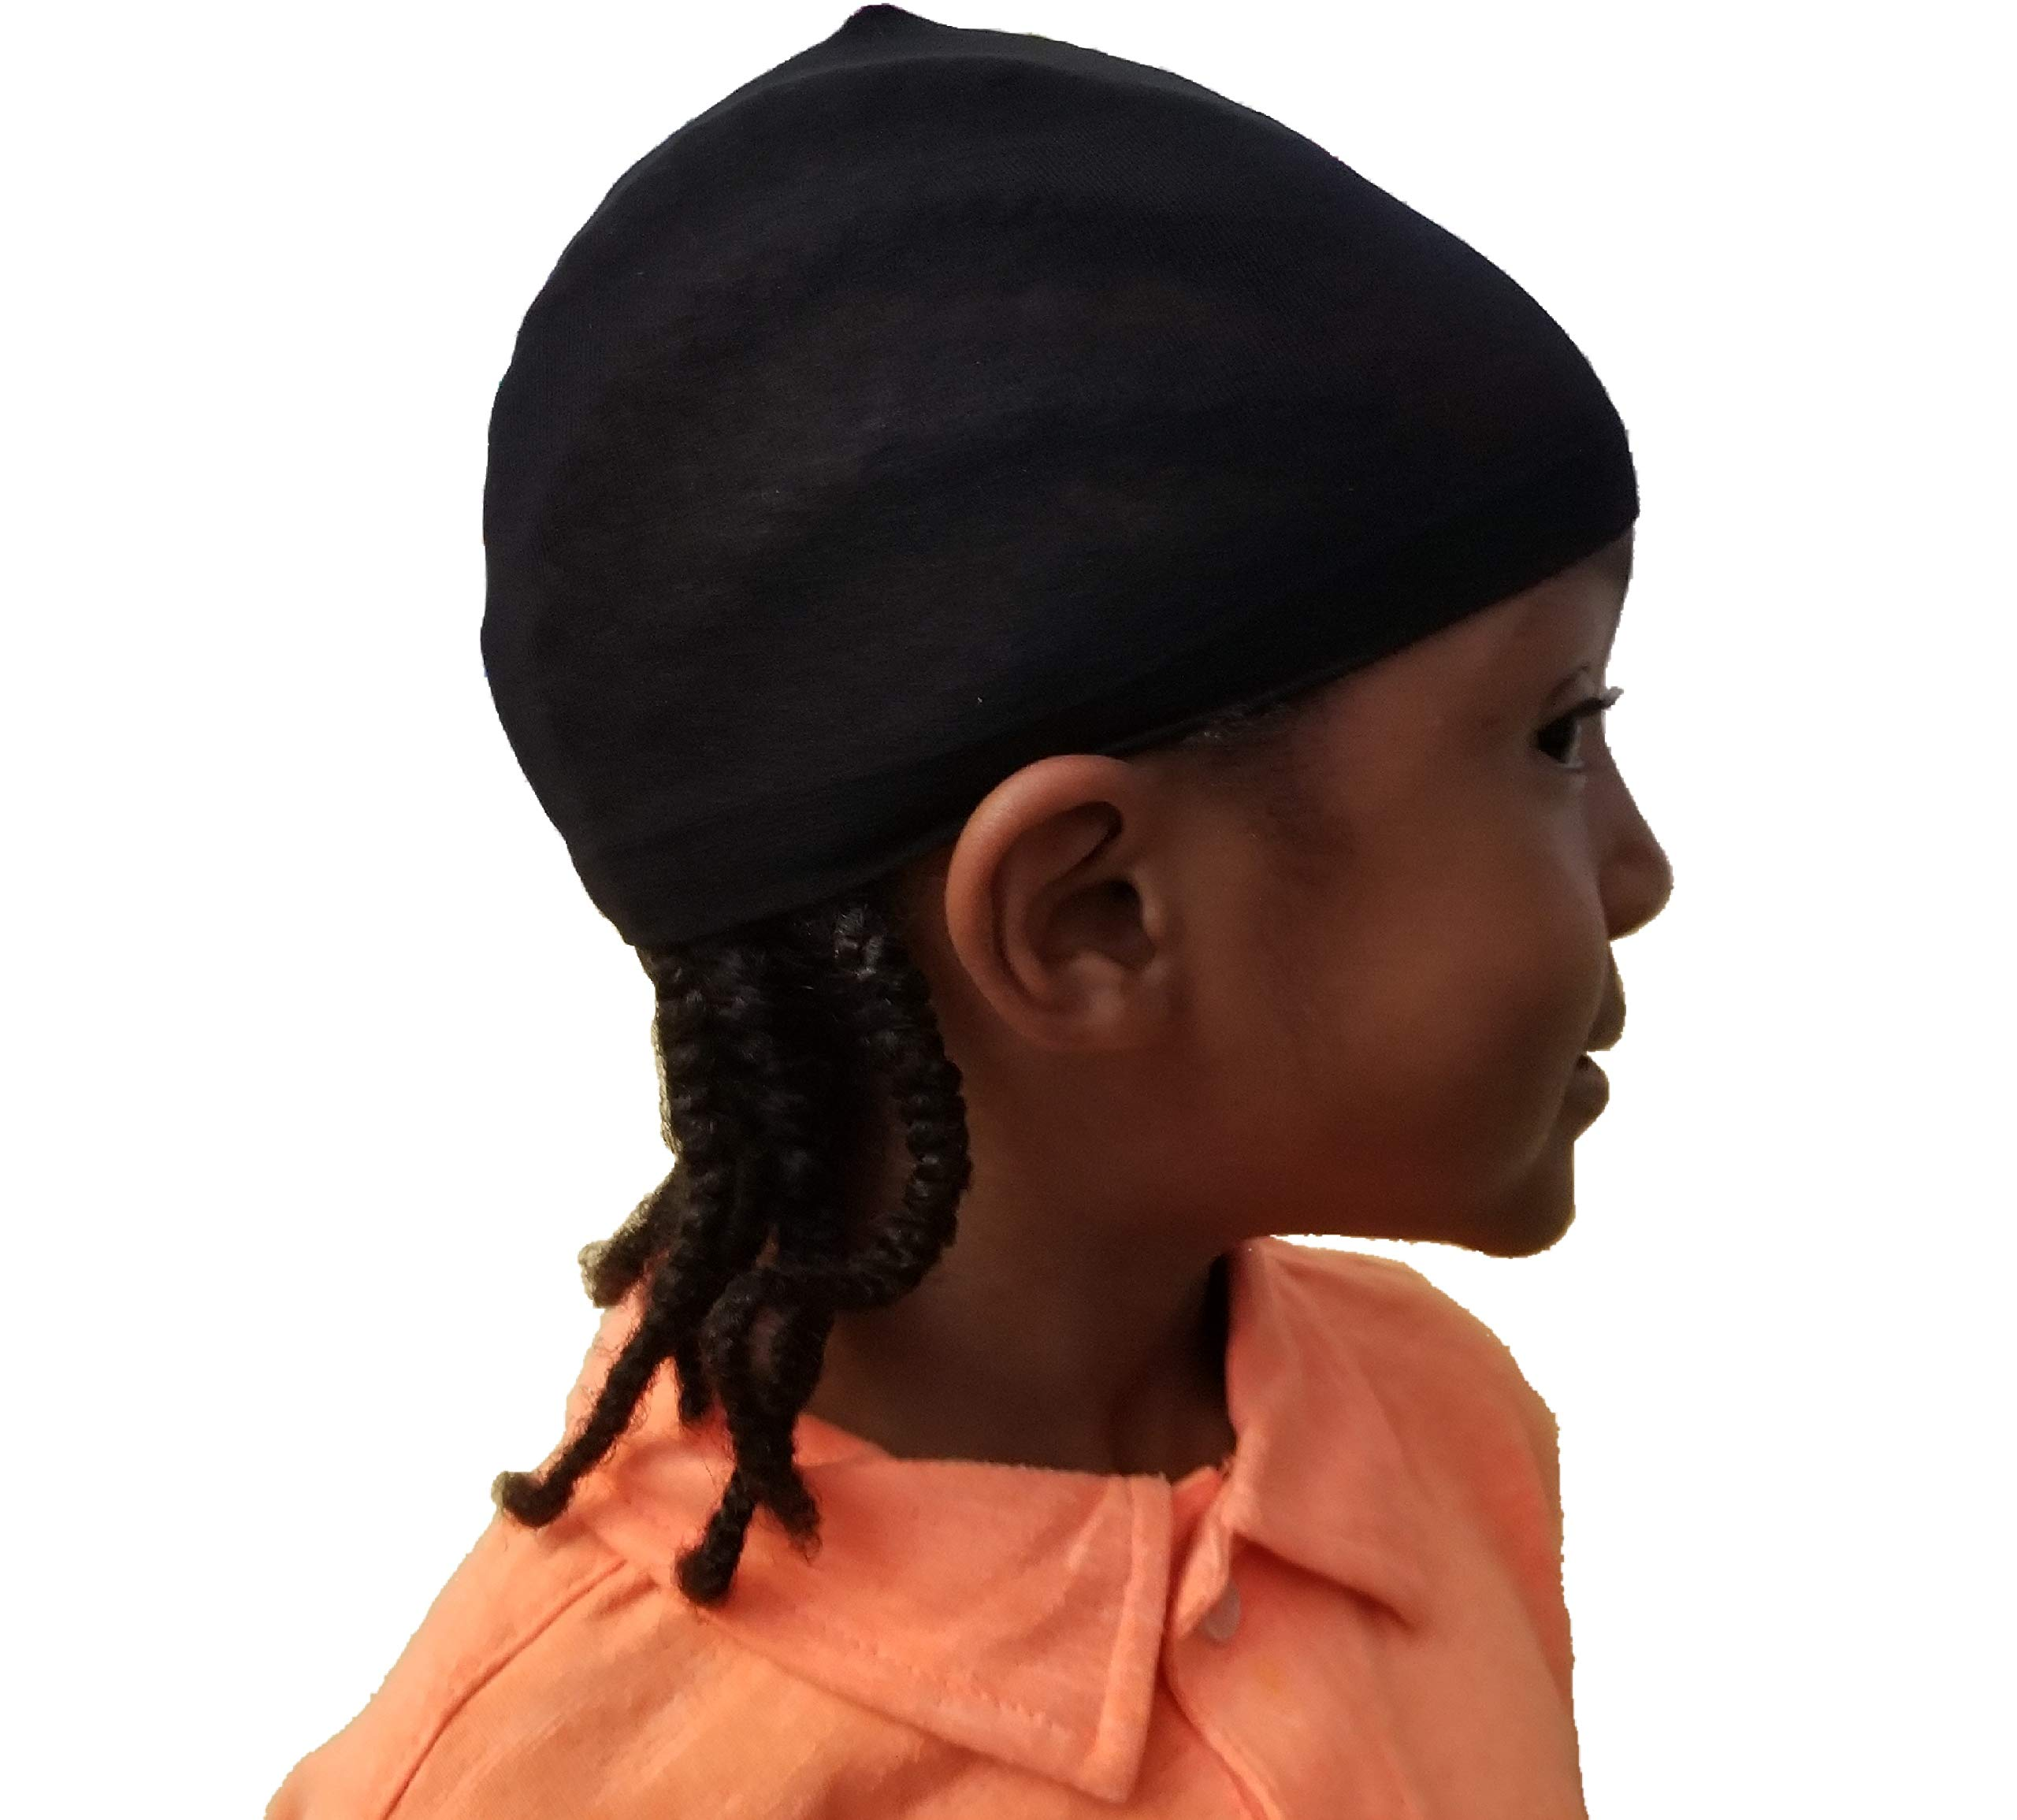 2 pcs Kids Wave caps du rag Hip hop doo rag Stocking Cap fit Children Head for Long Styles or Waves